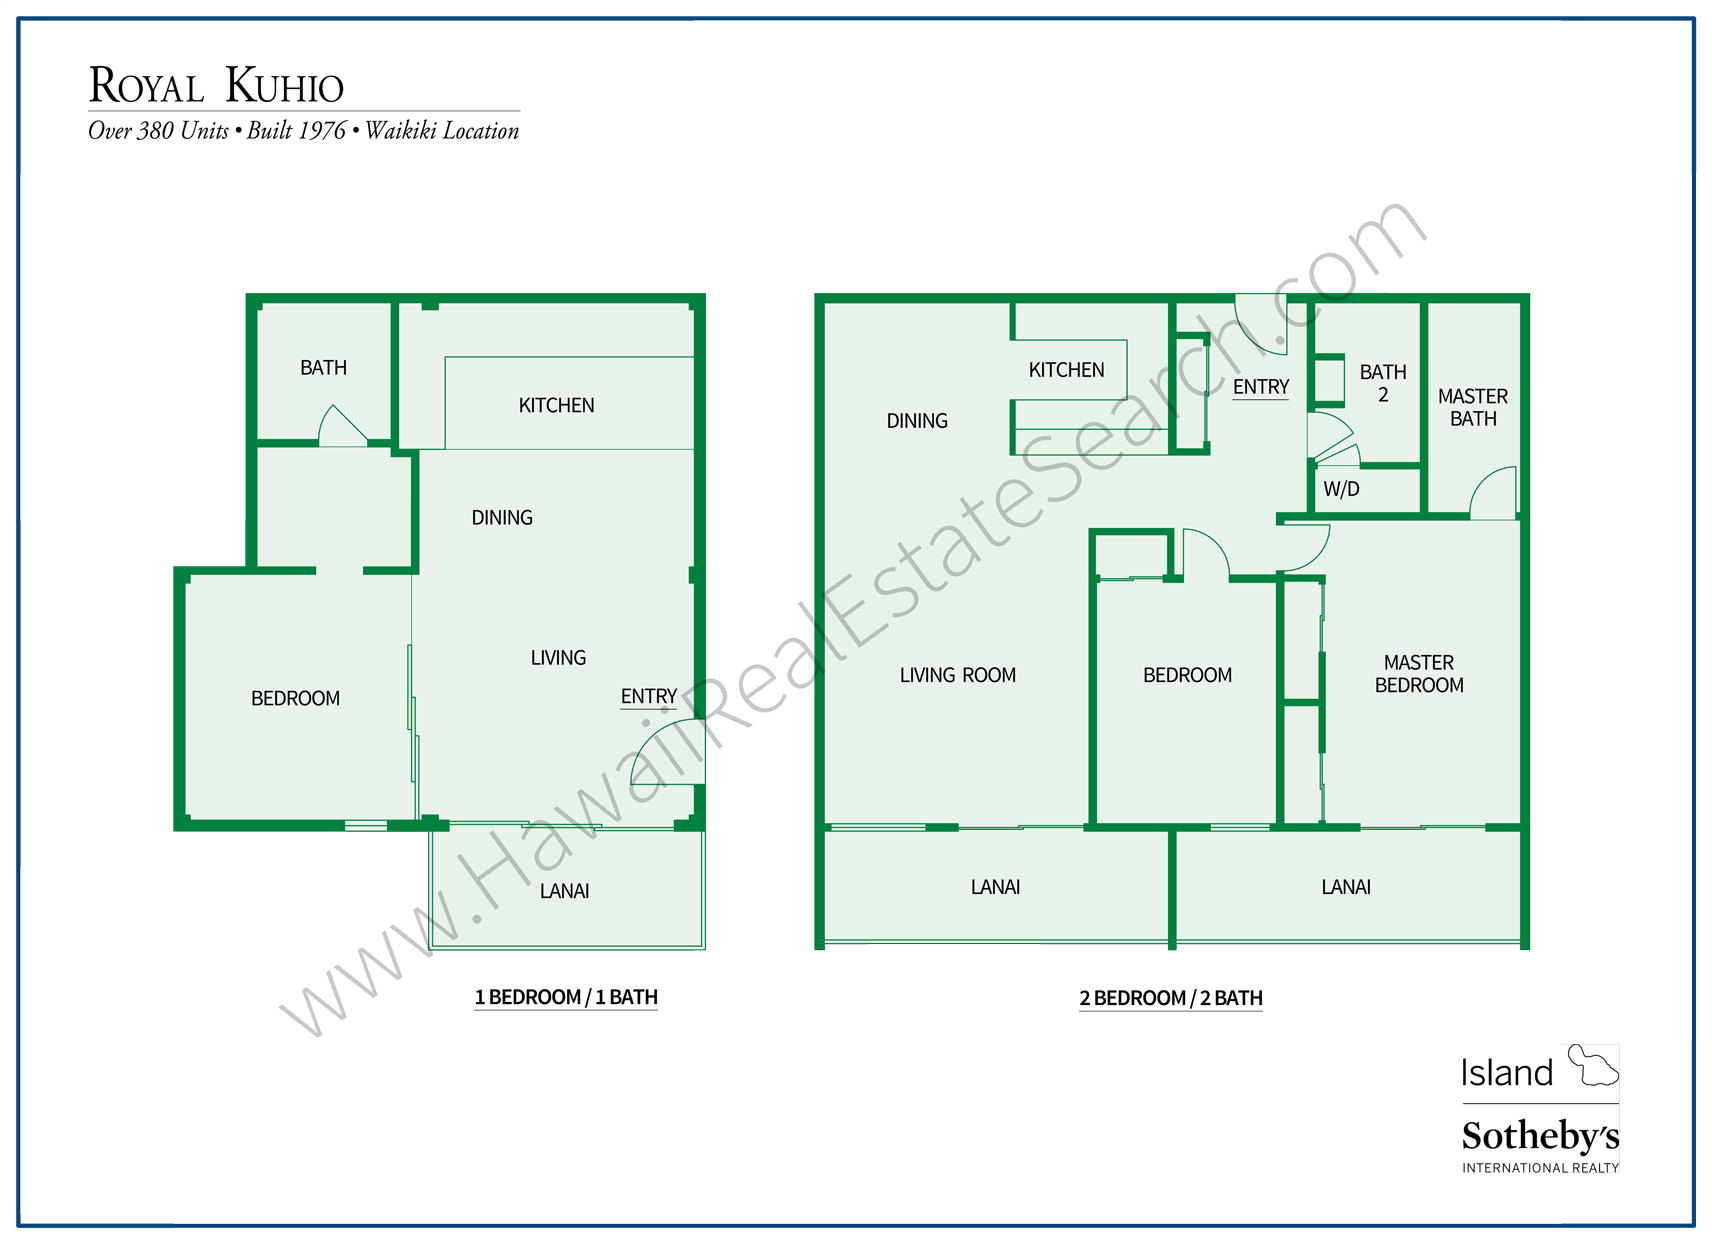 Floorplans of Royal Kuhio Condos